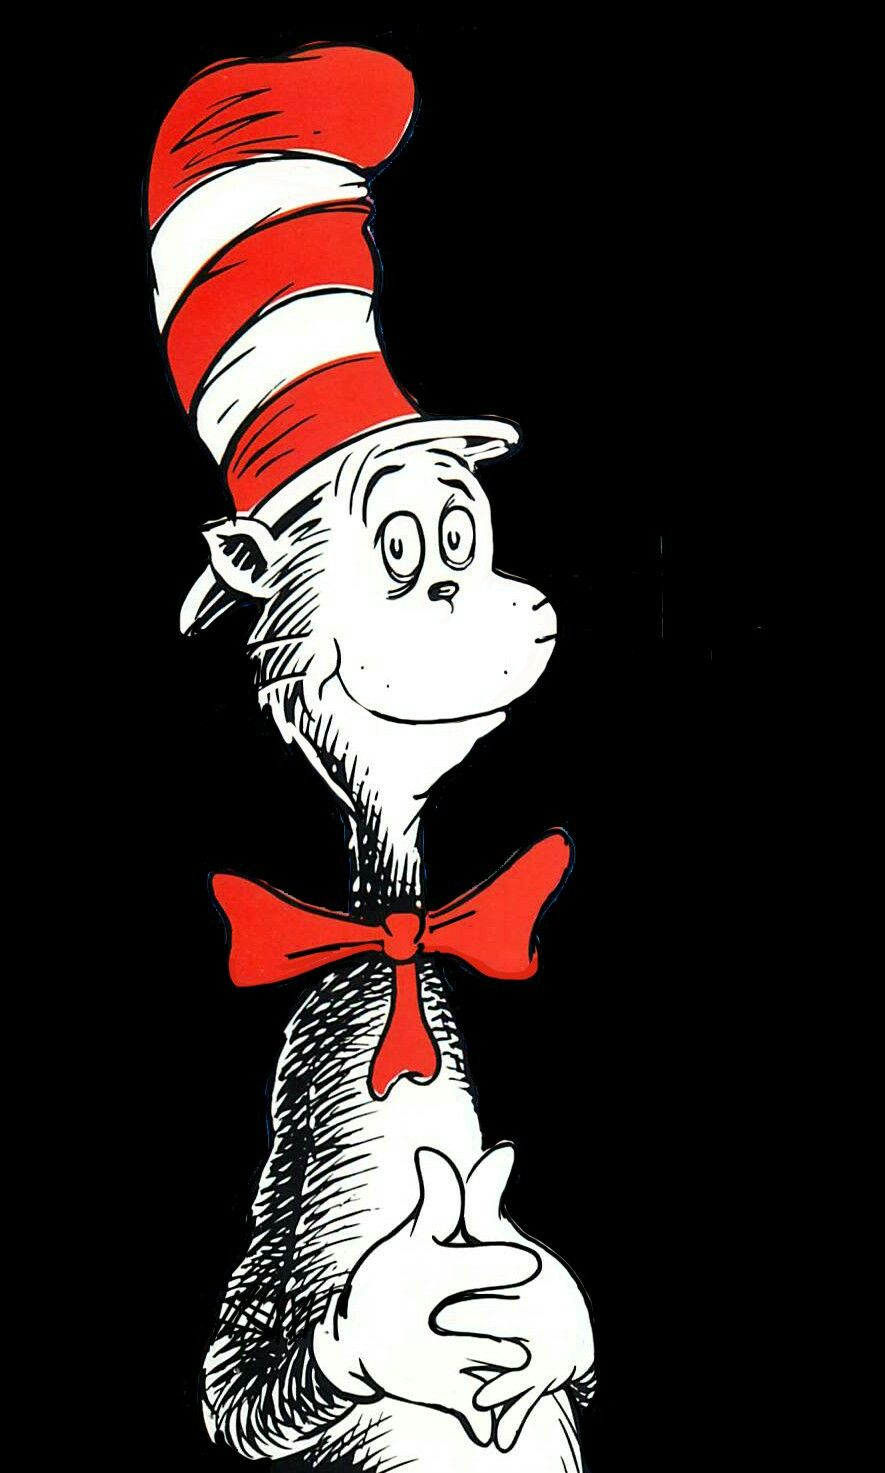 Park Art My WordPress Blog_The Cat In The Hat Dvd Cover